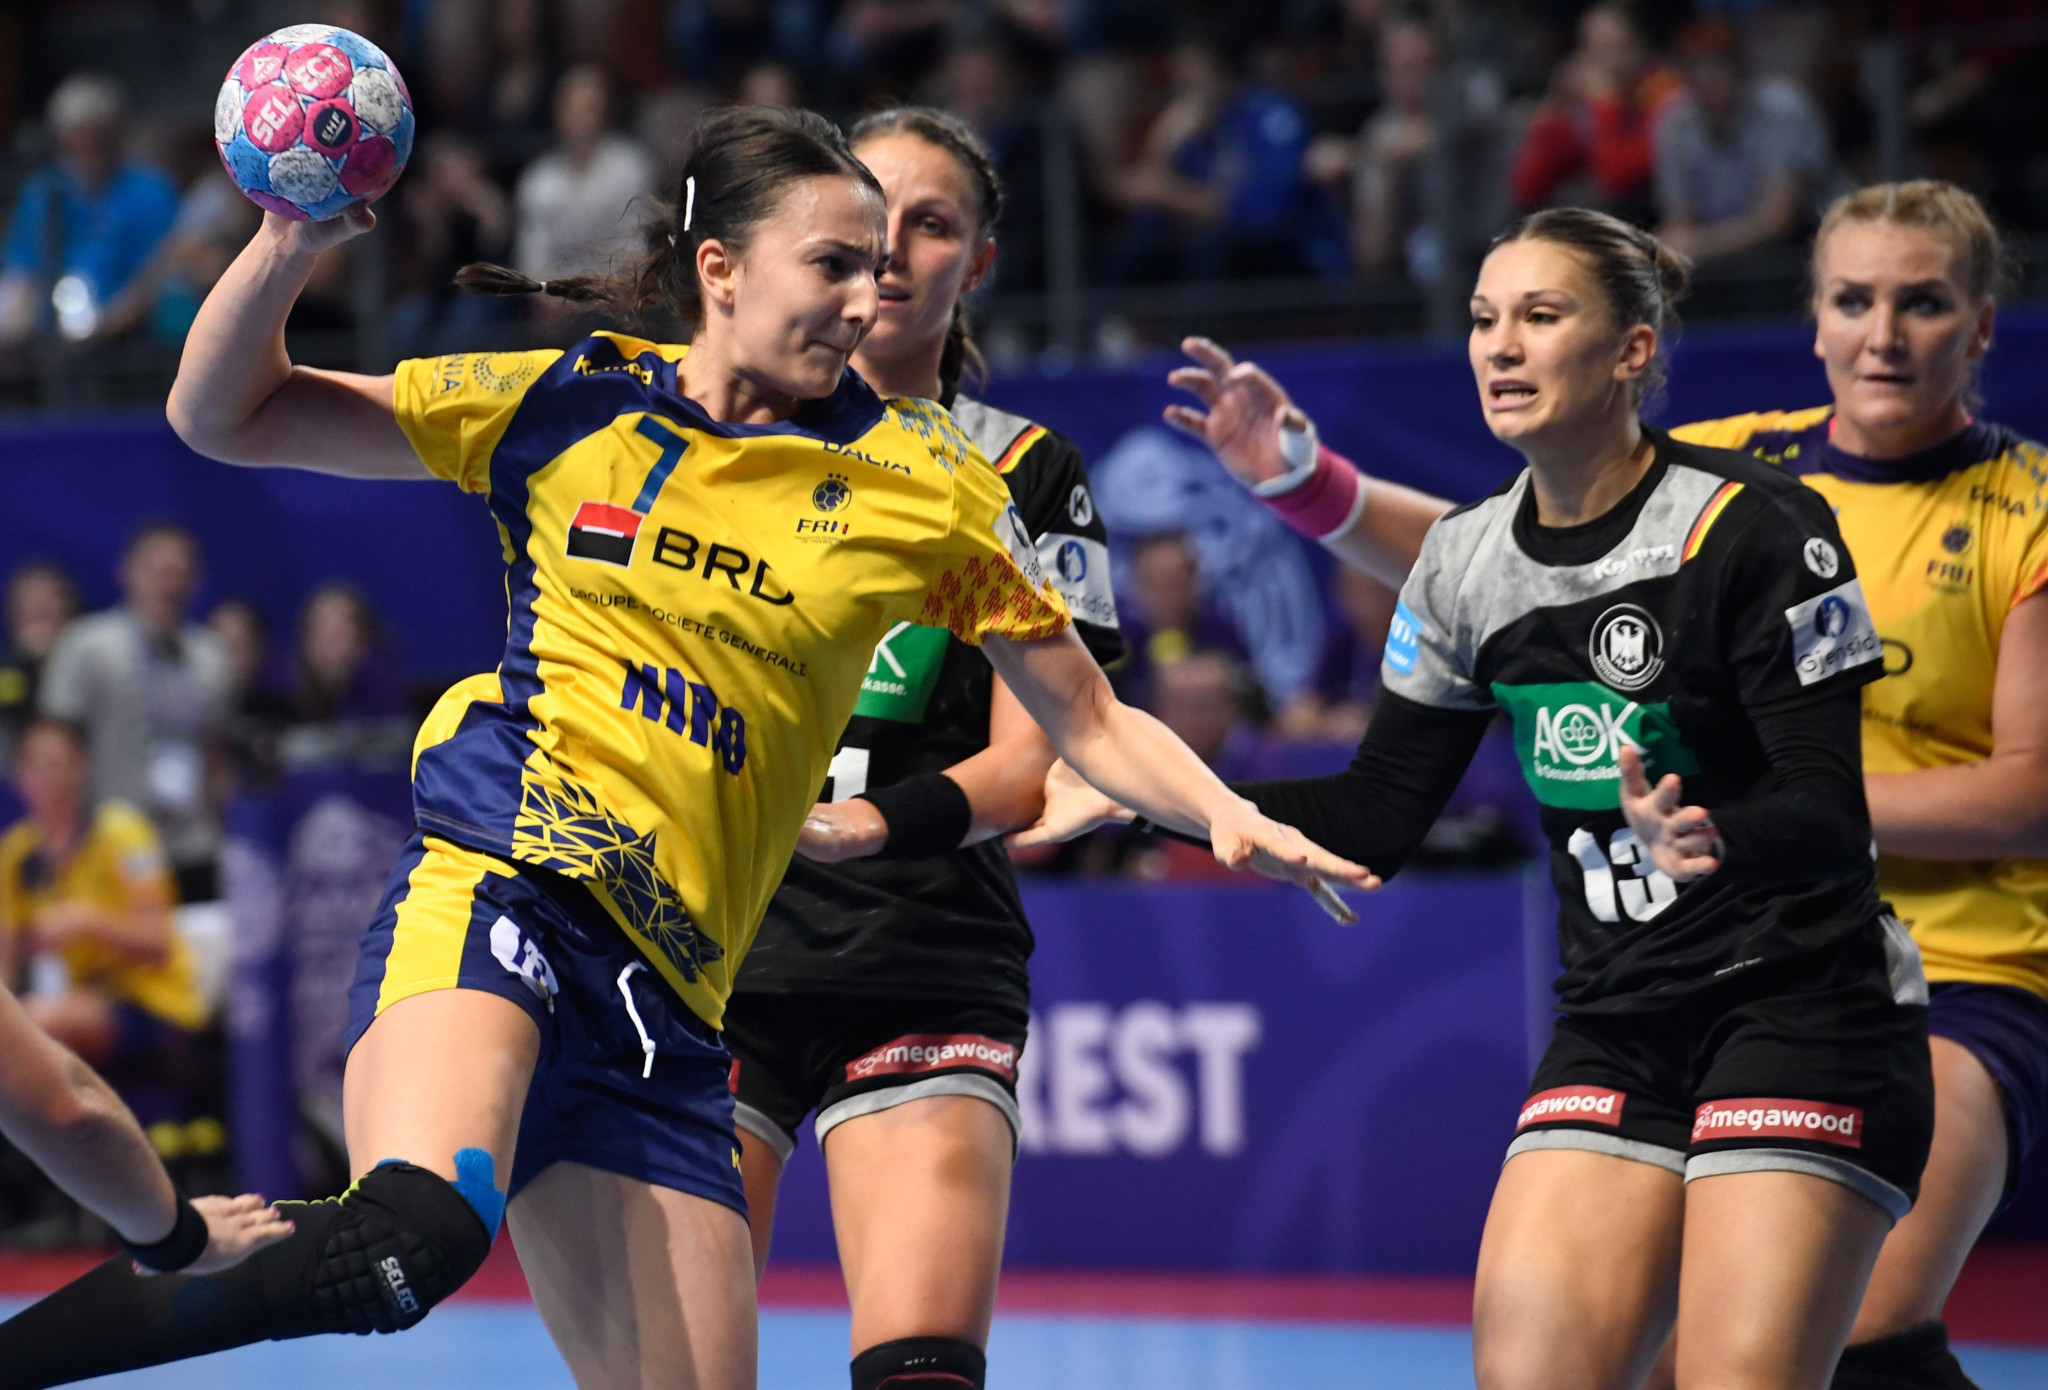 Romania beat Germany at the European Women's Handball Championships to progress into the main round ©Getty Images